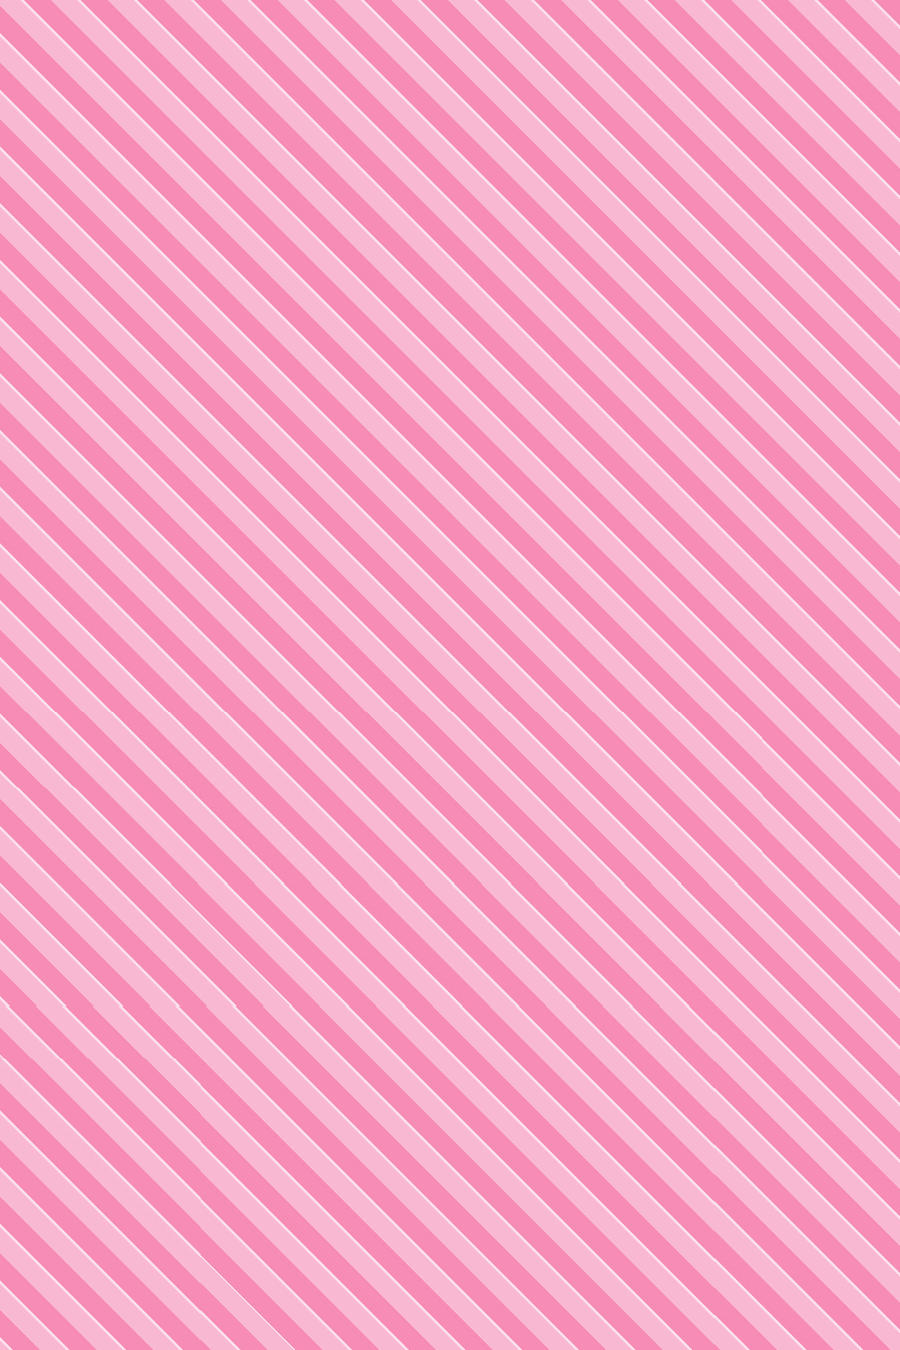 Pink Candy Stripes - CBB by Kyramy